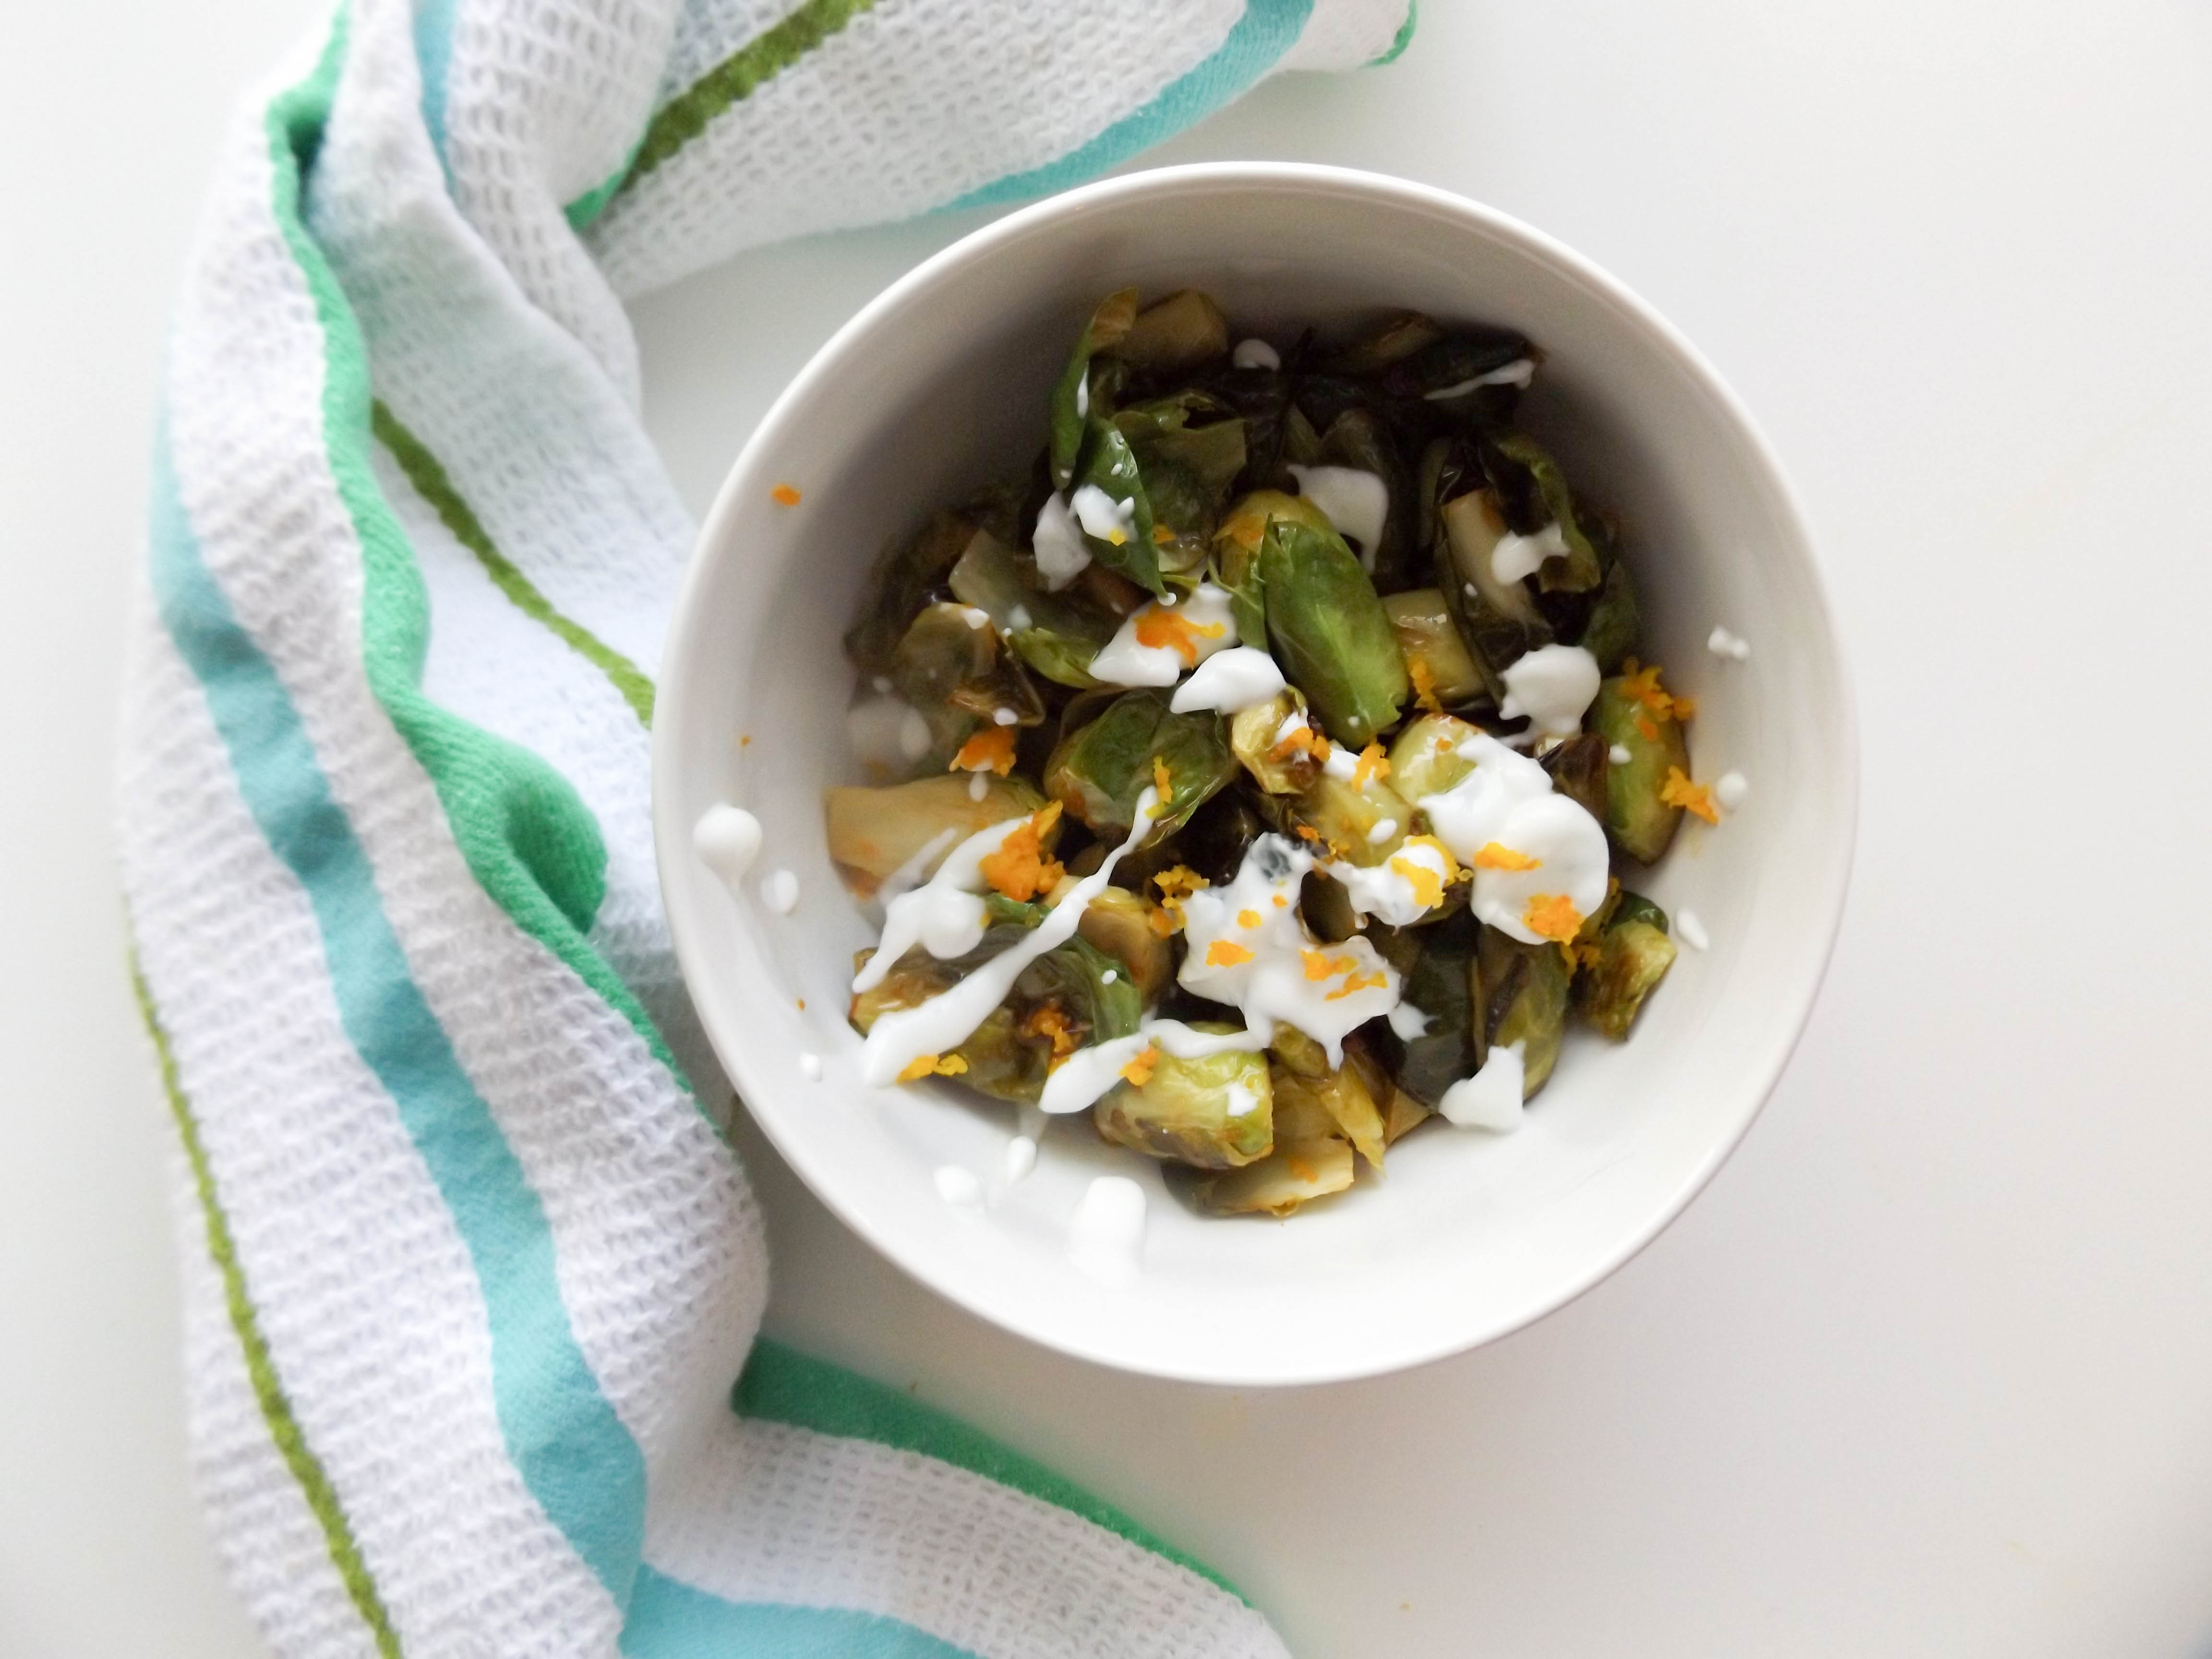 Orange Brussels Sprouts with Mint Yogurt